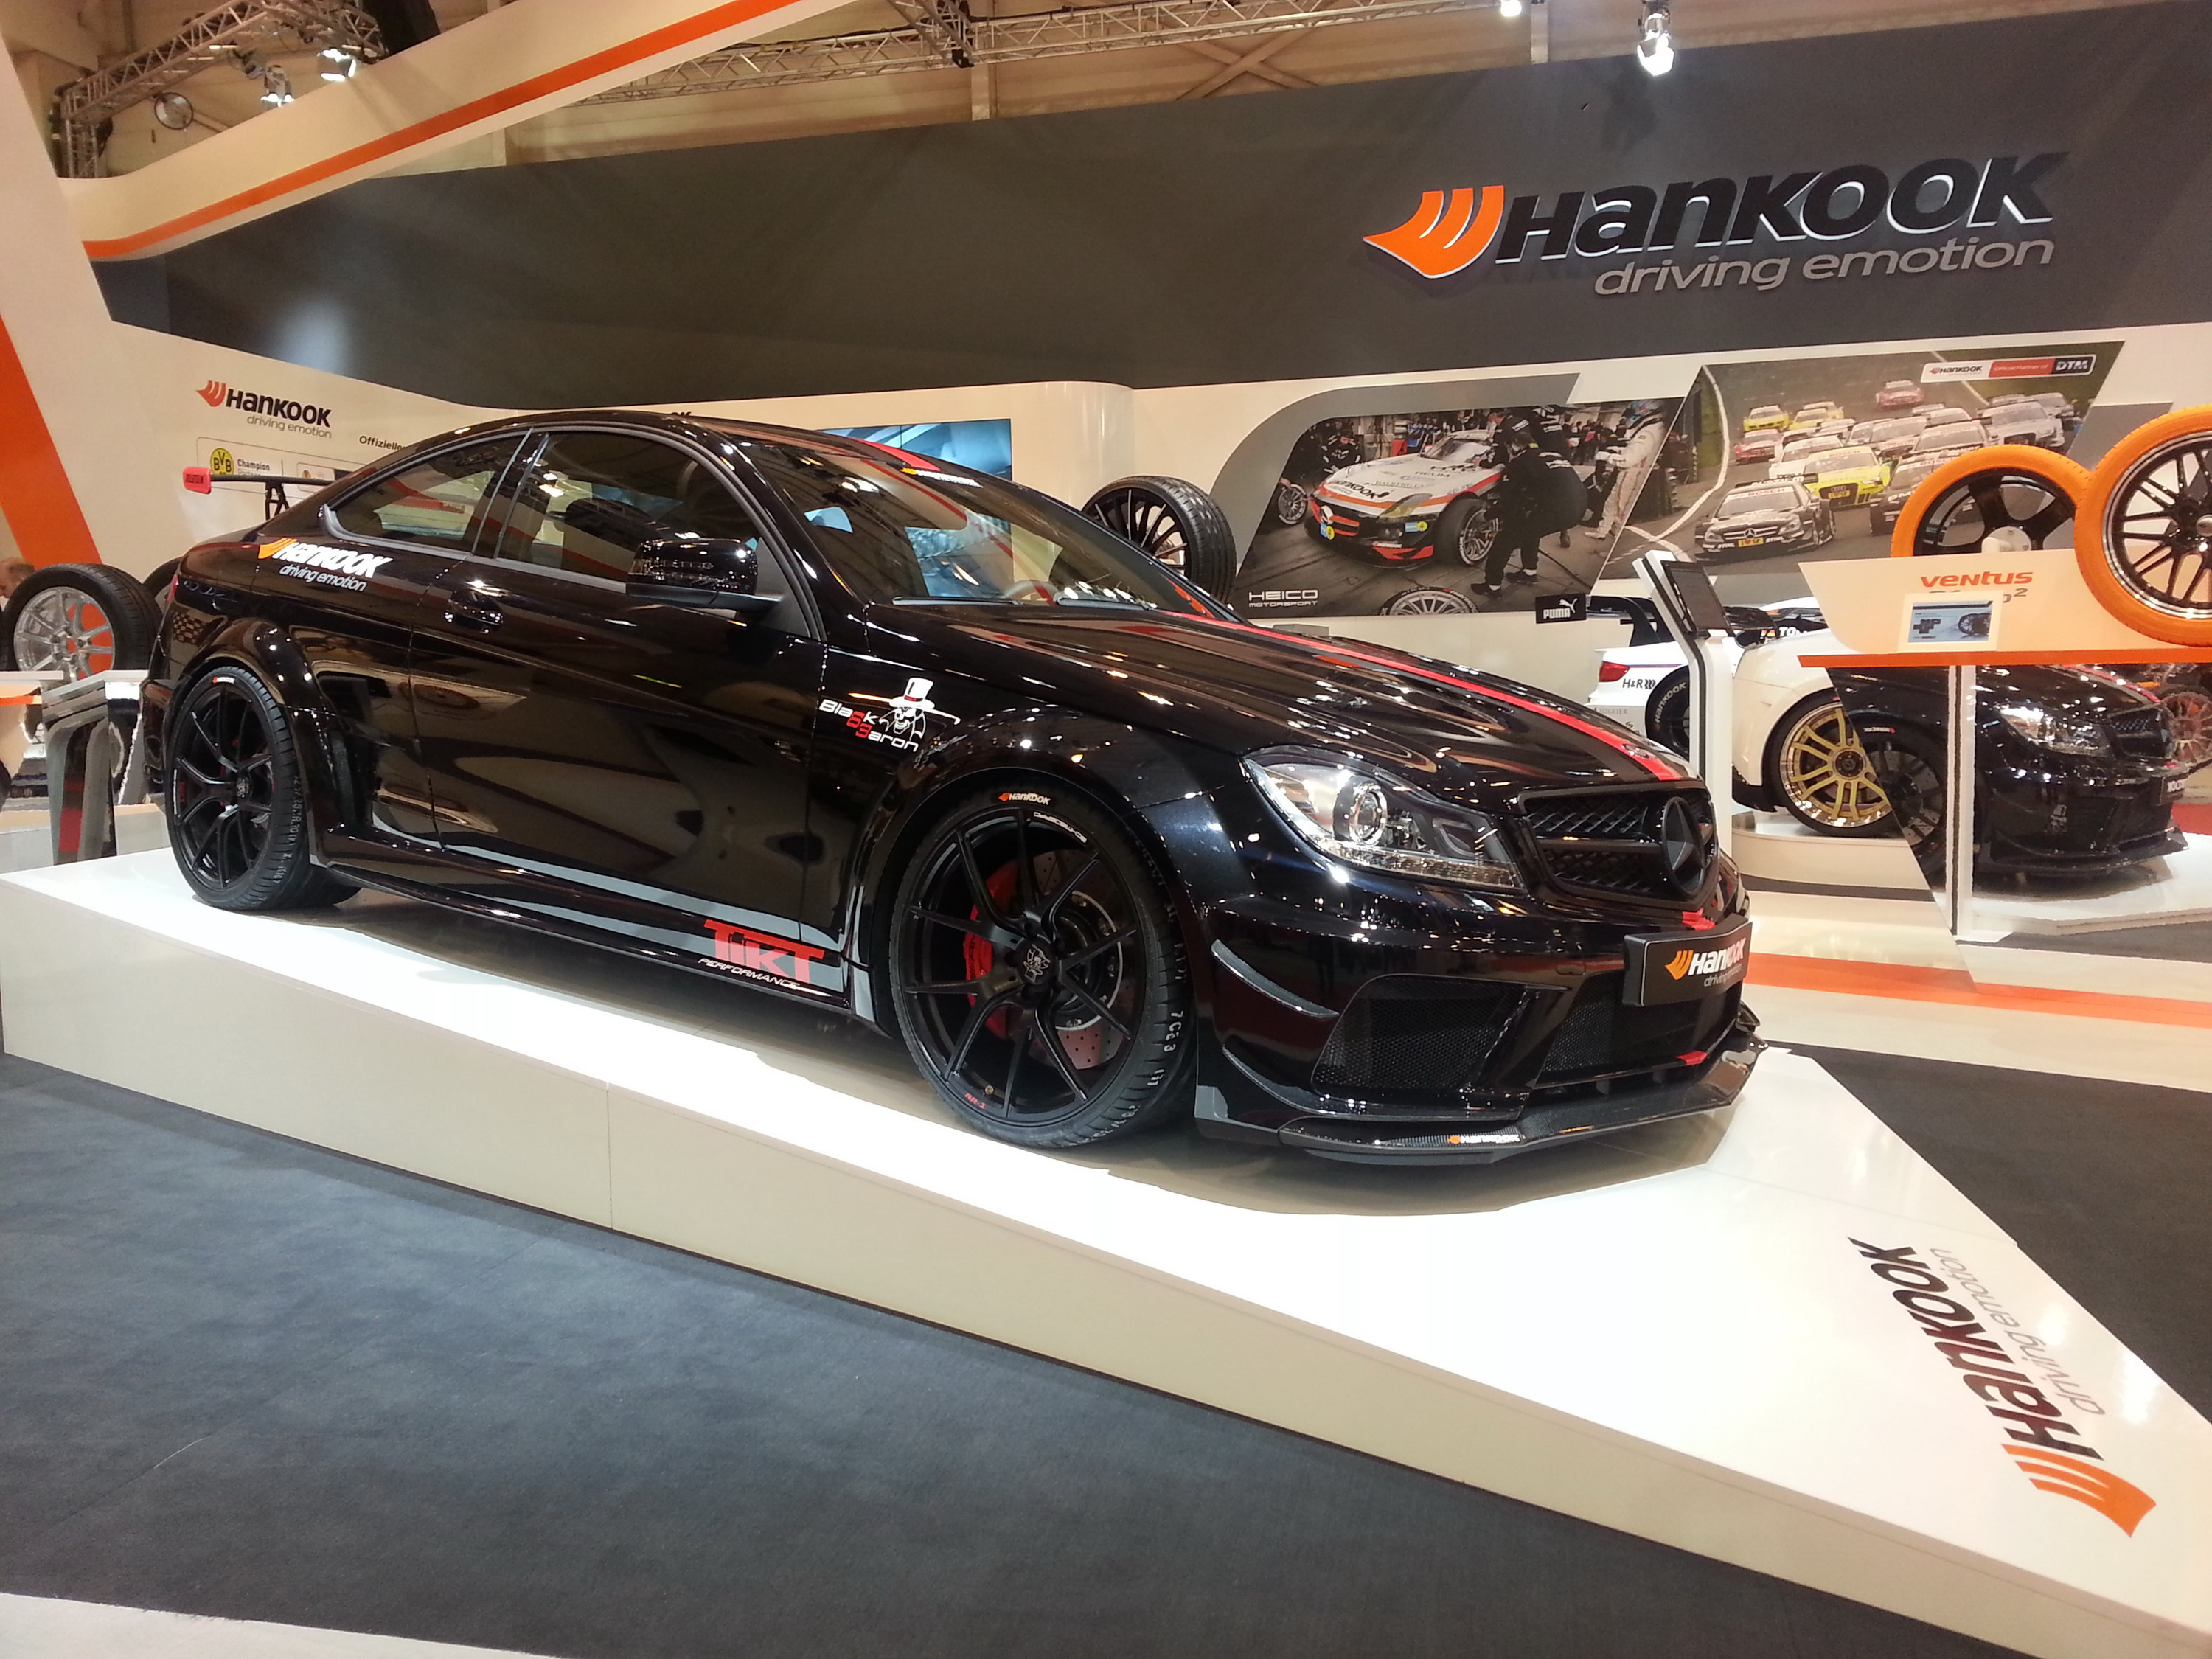 2013 mercedes-benz c63 amg black baron by tikt review